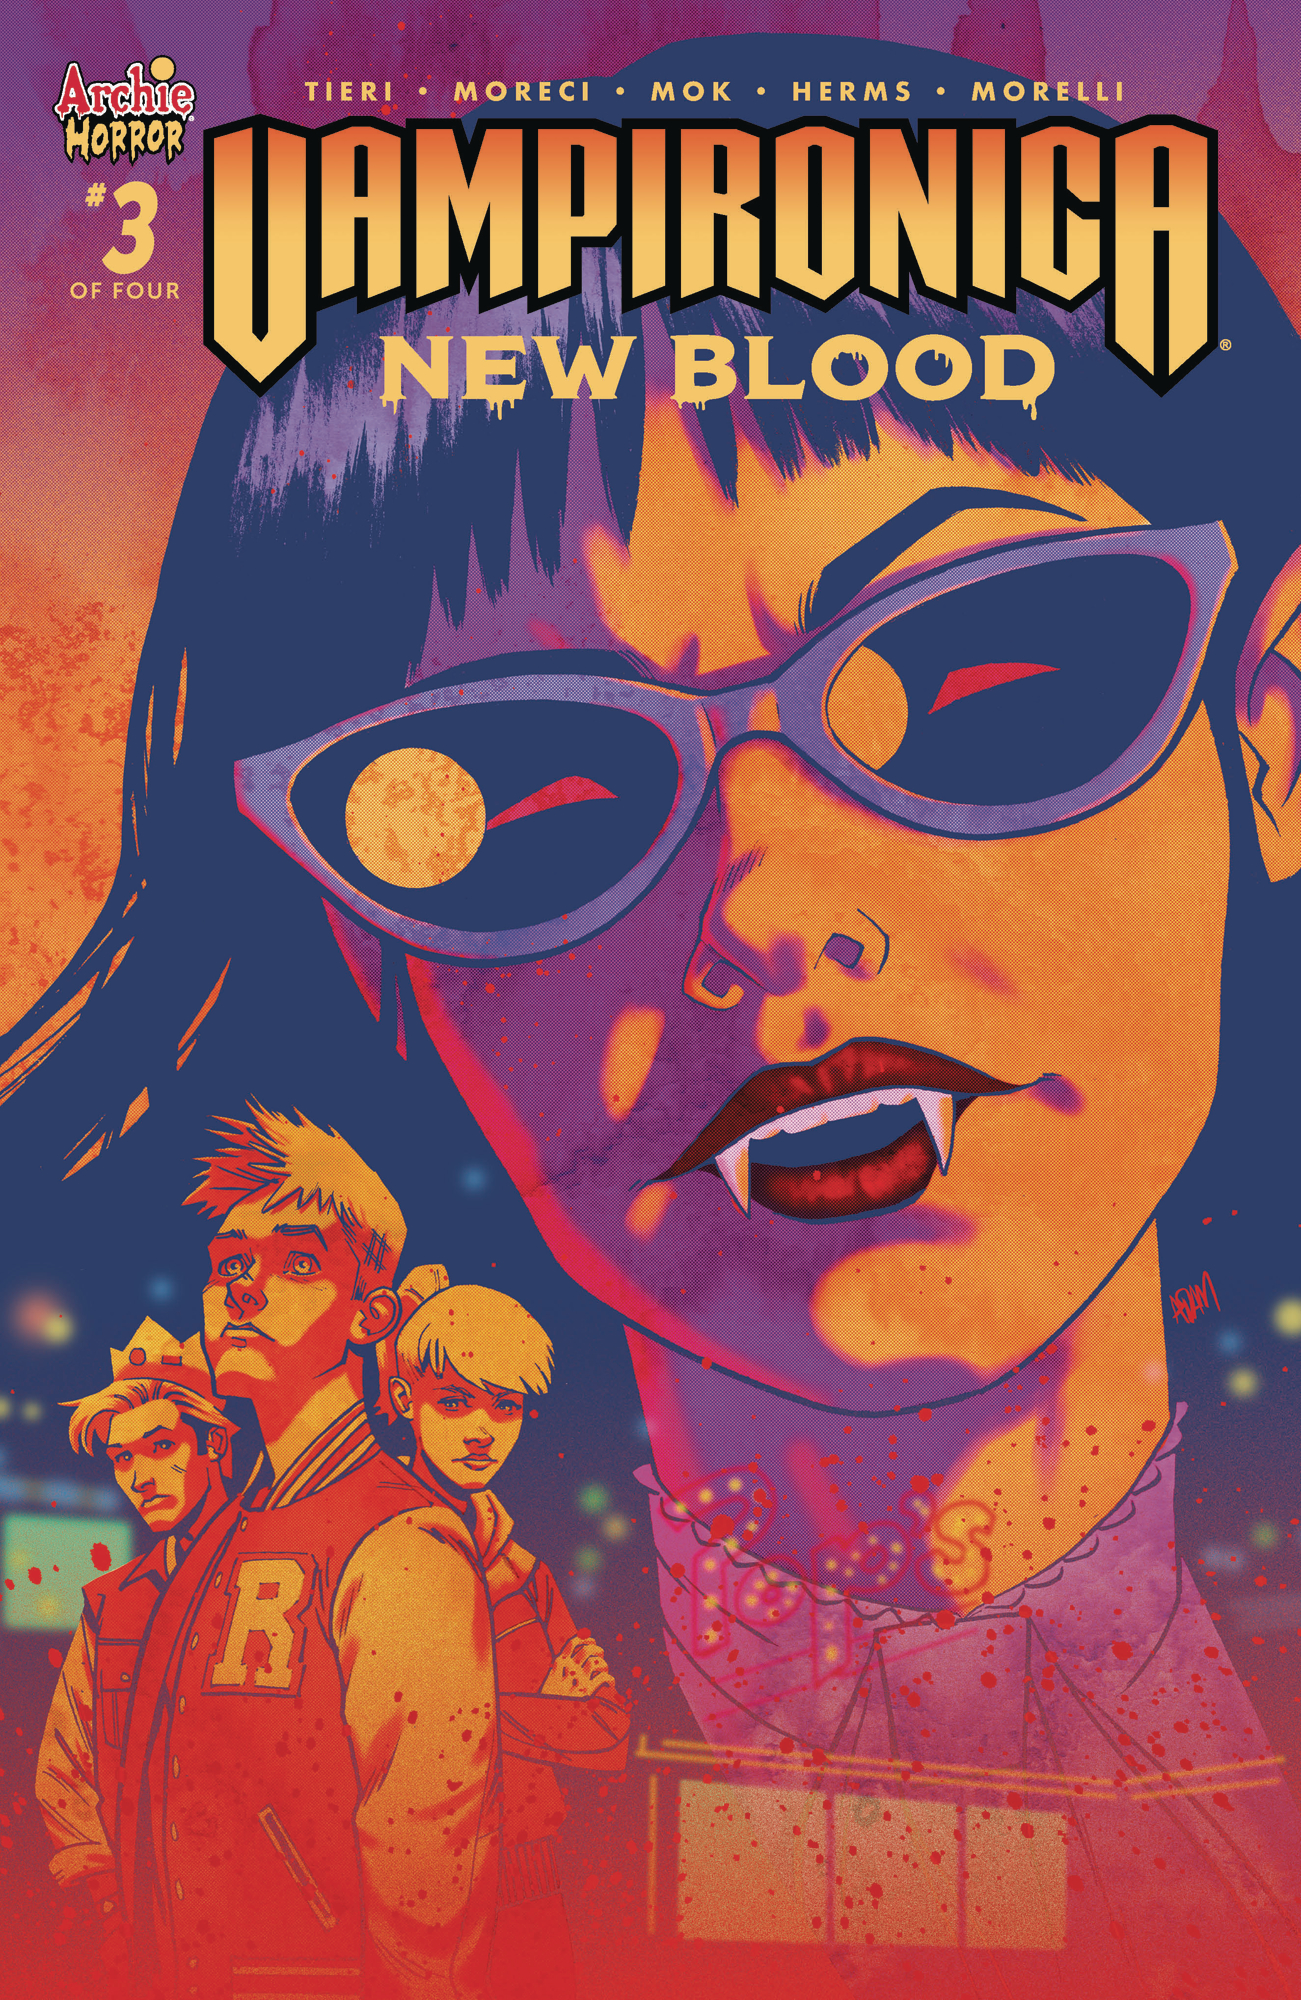 VAMPIRONICA NEW BLOOD #3 CVR B GORHAM